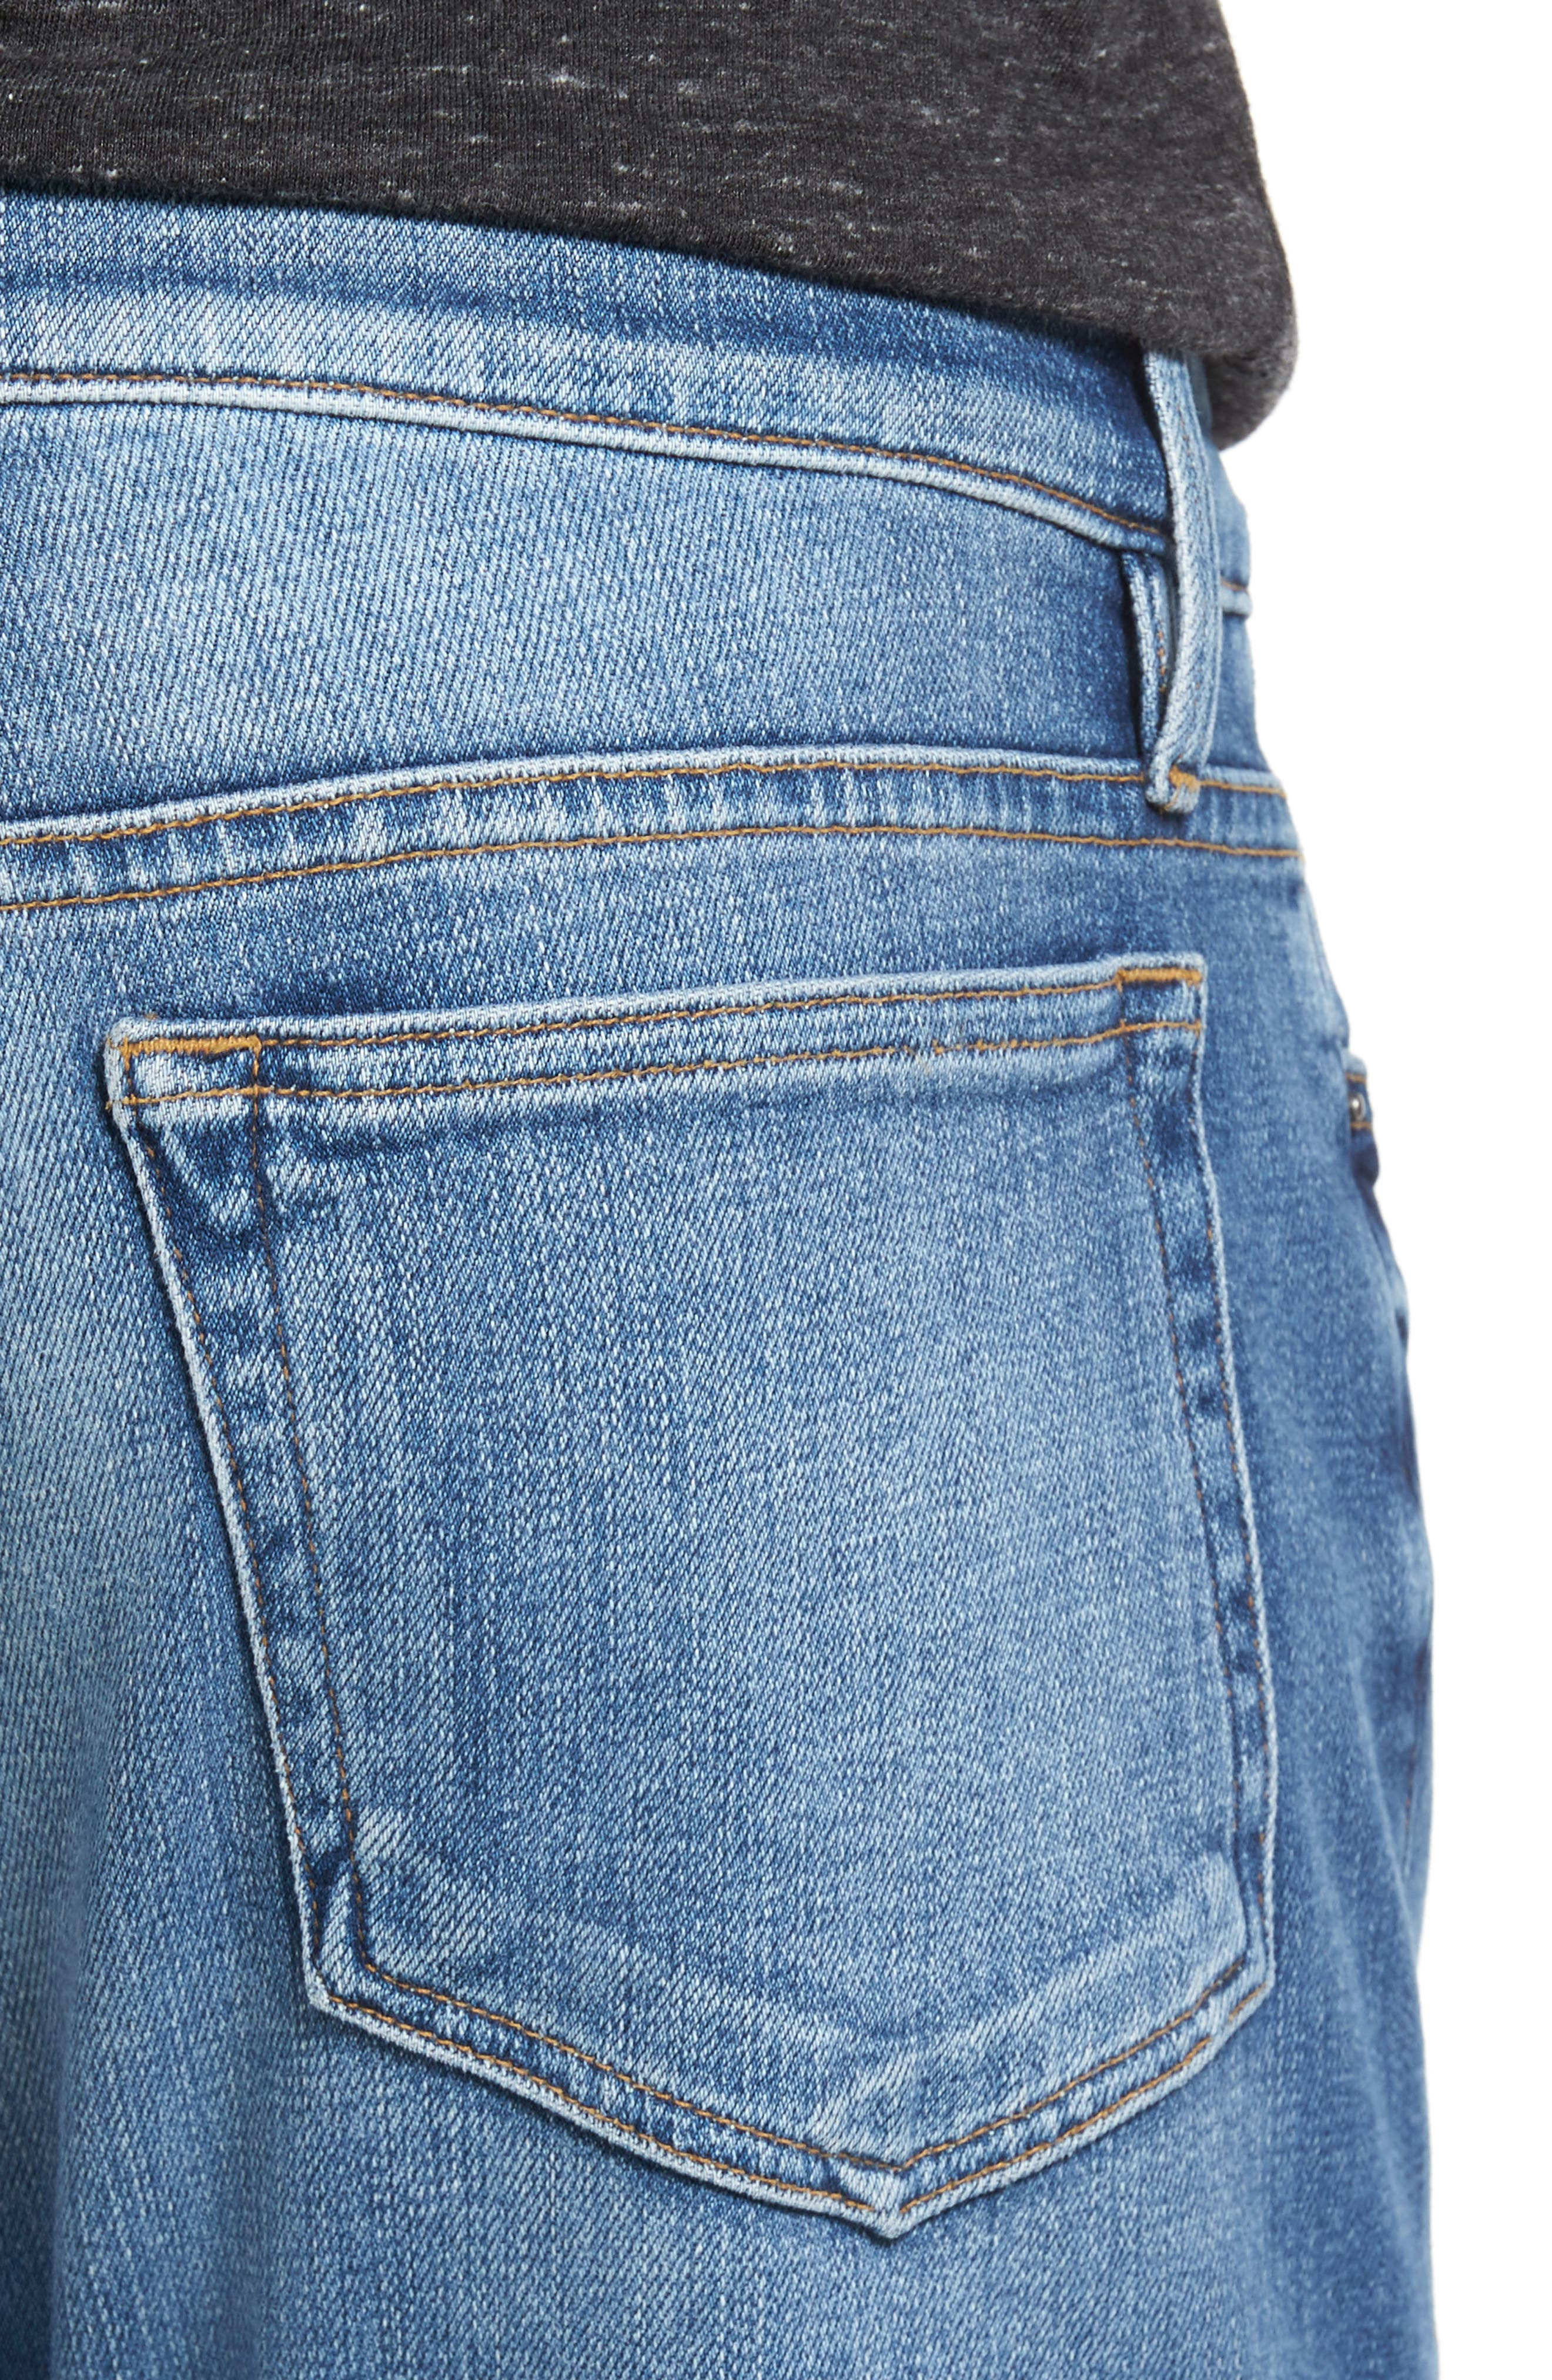 L'Homme Slim Fit Jeans,                             Alternate thumbnail 4, color,